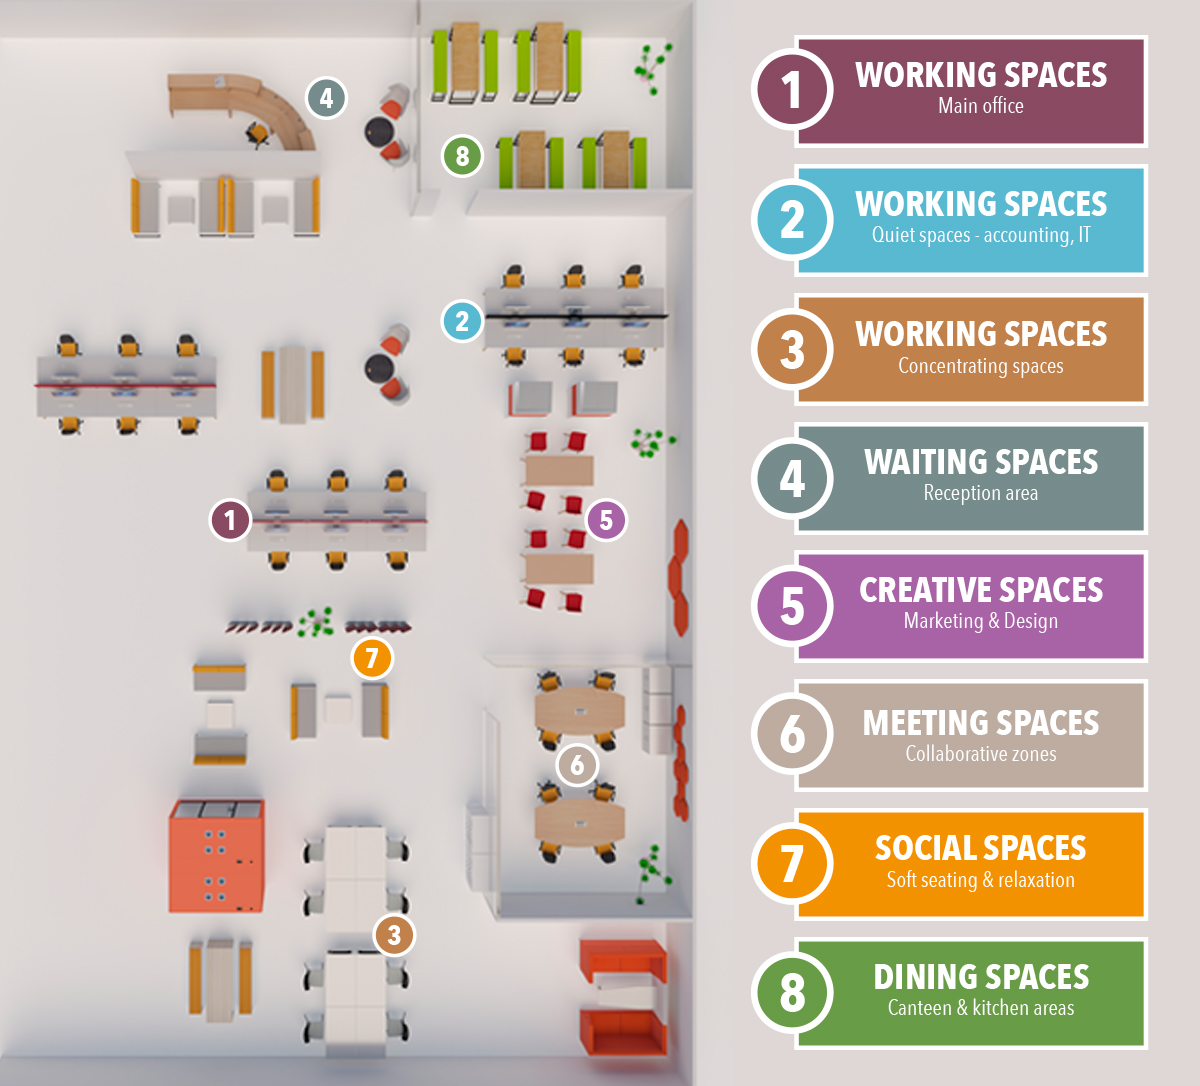 Return to the office - Plan for work 'space'